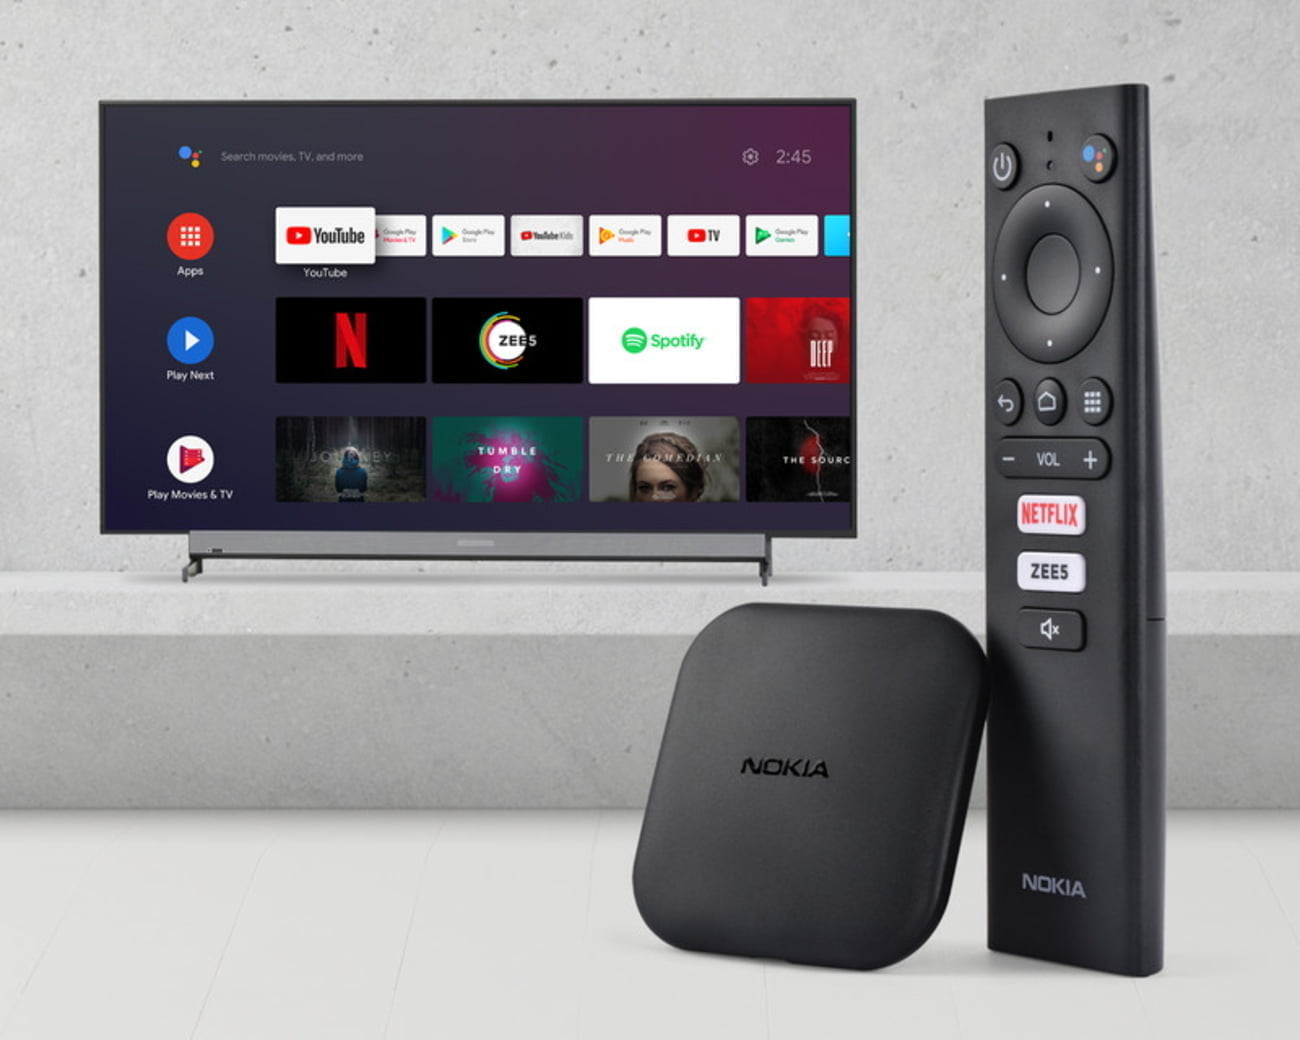 Nokia Media Streamer with quad-core processor, Android 9 launched in India for Rs. 3,499